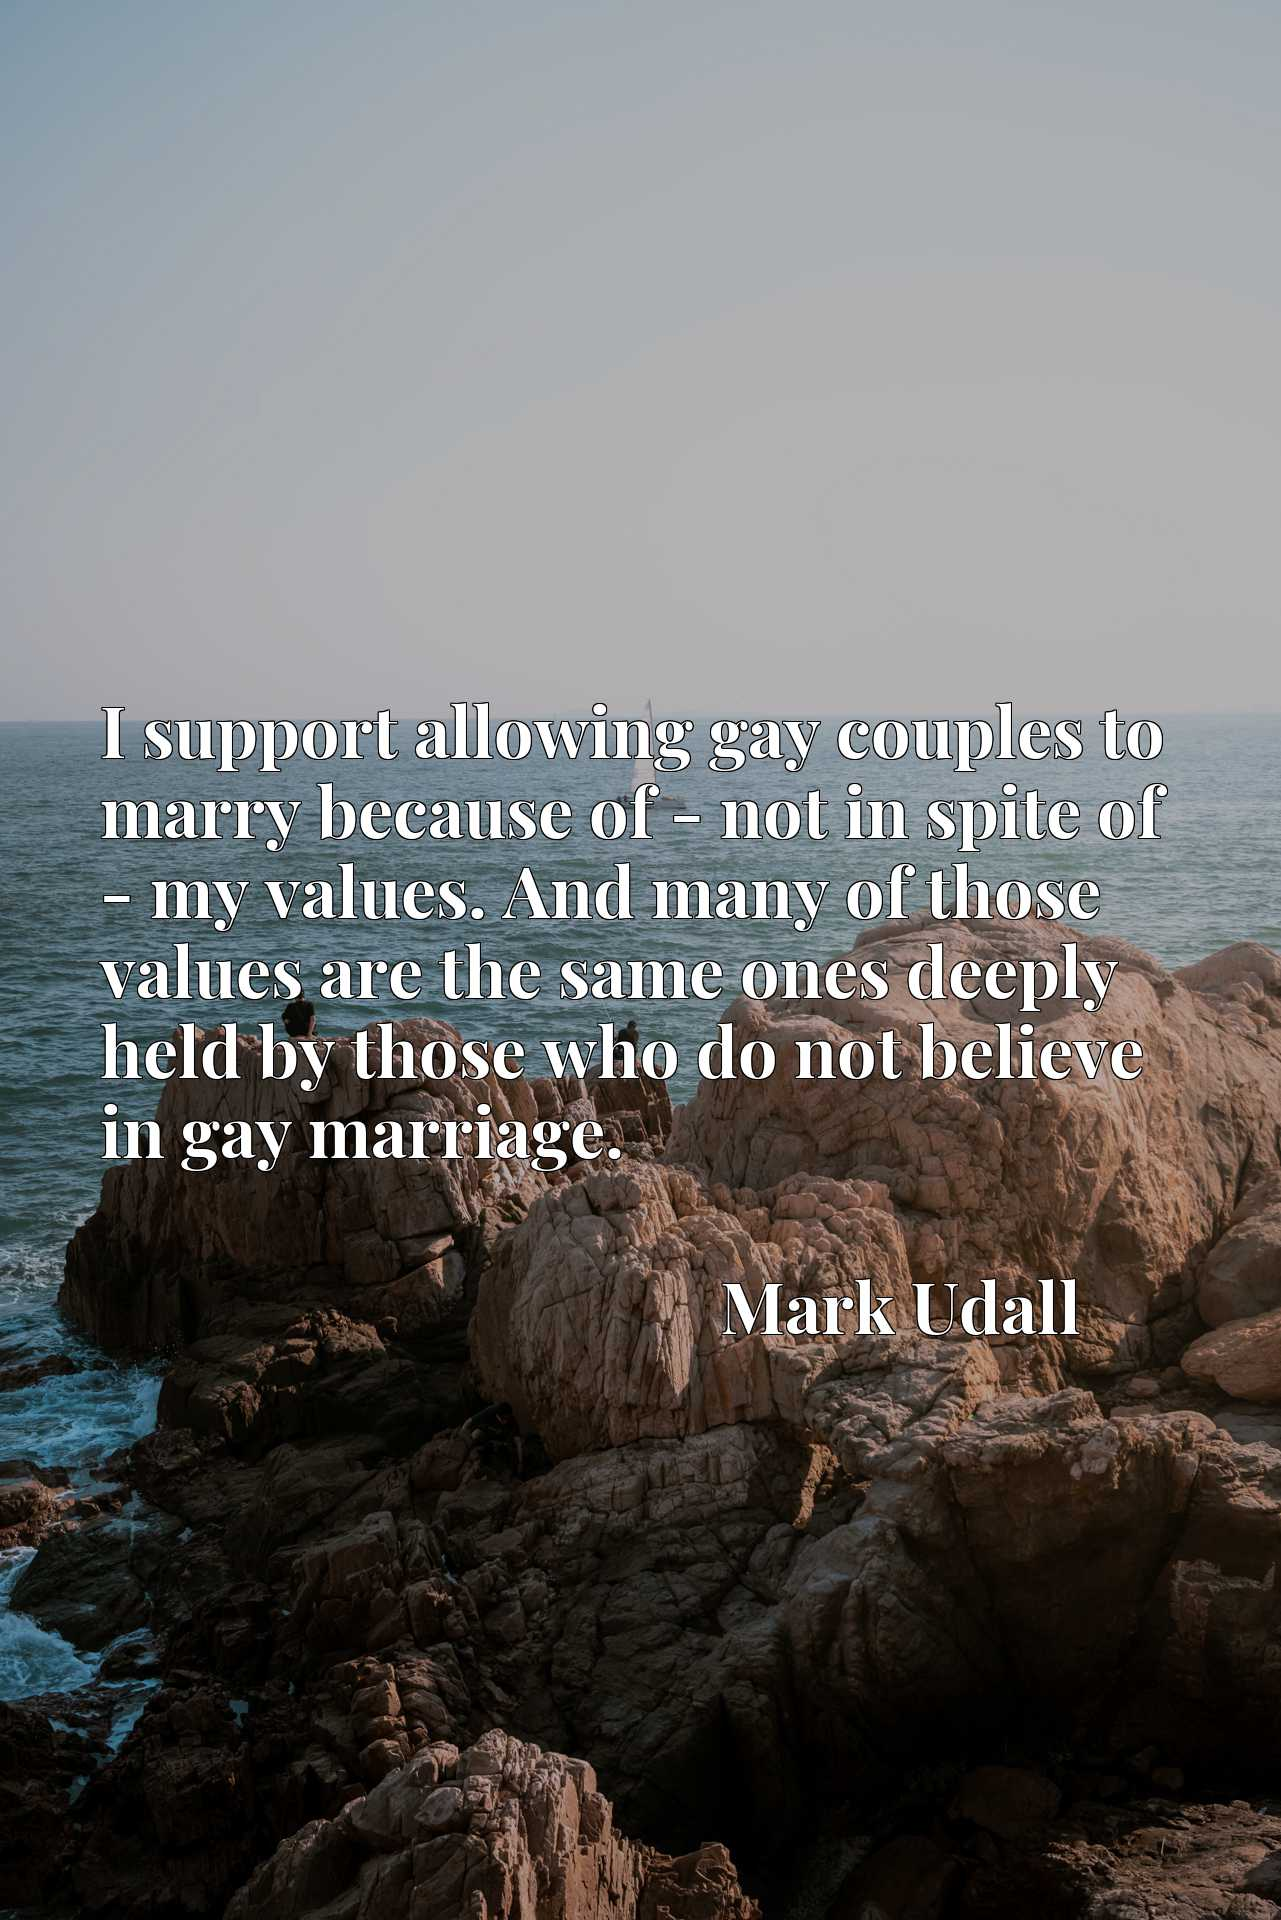 I support allowing gay couples to marry because of - not in spite of - my values. And many of those values are the same ones deeply held by those who do not believe in gay marriage.